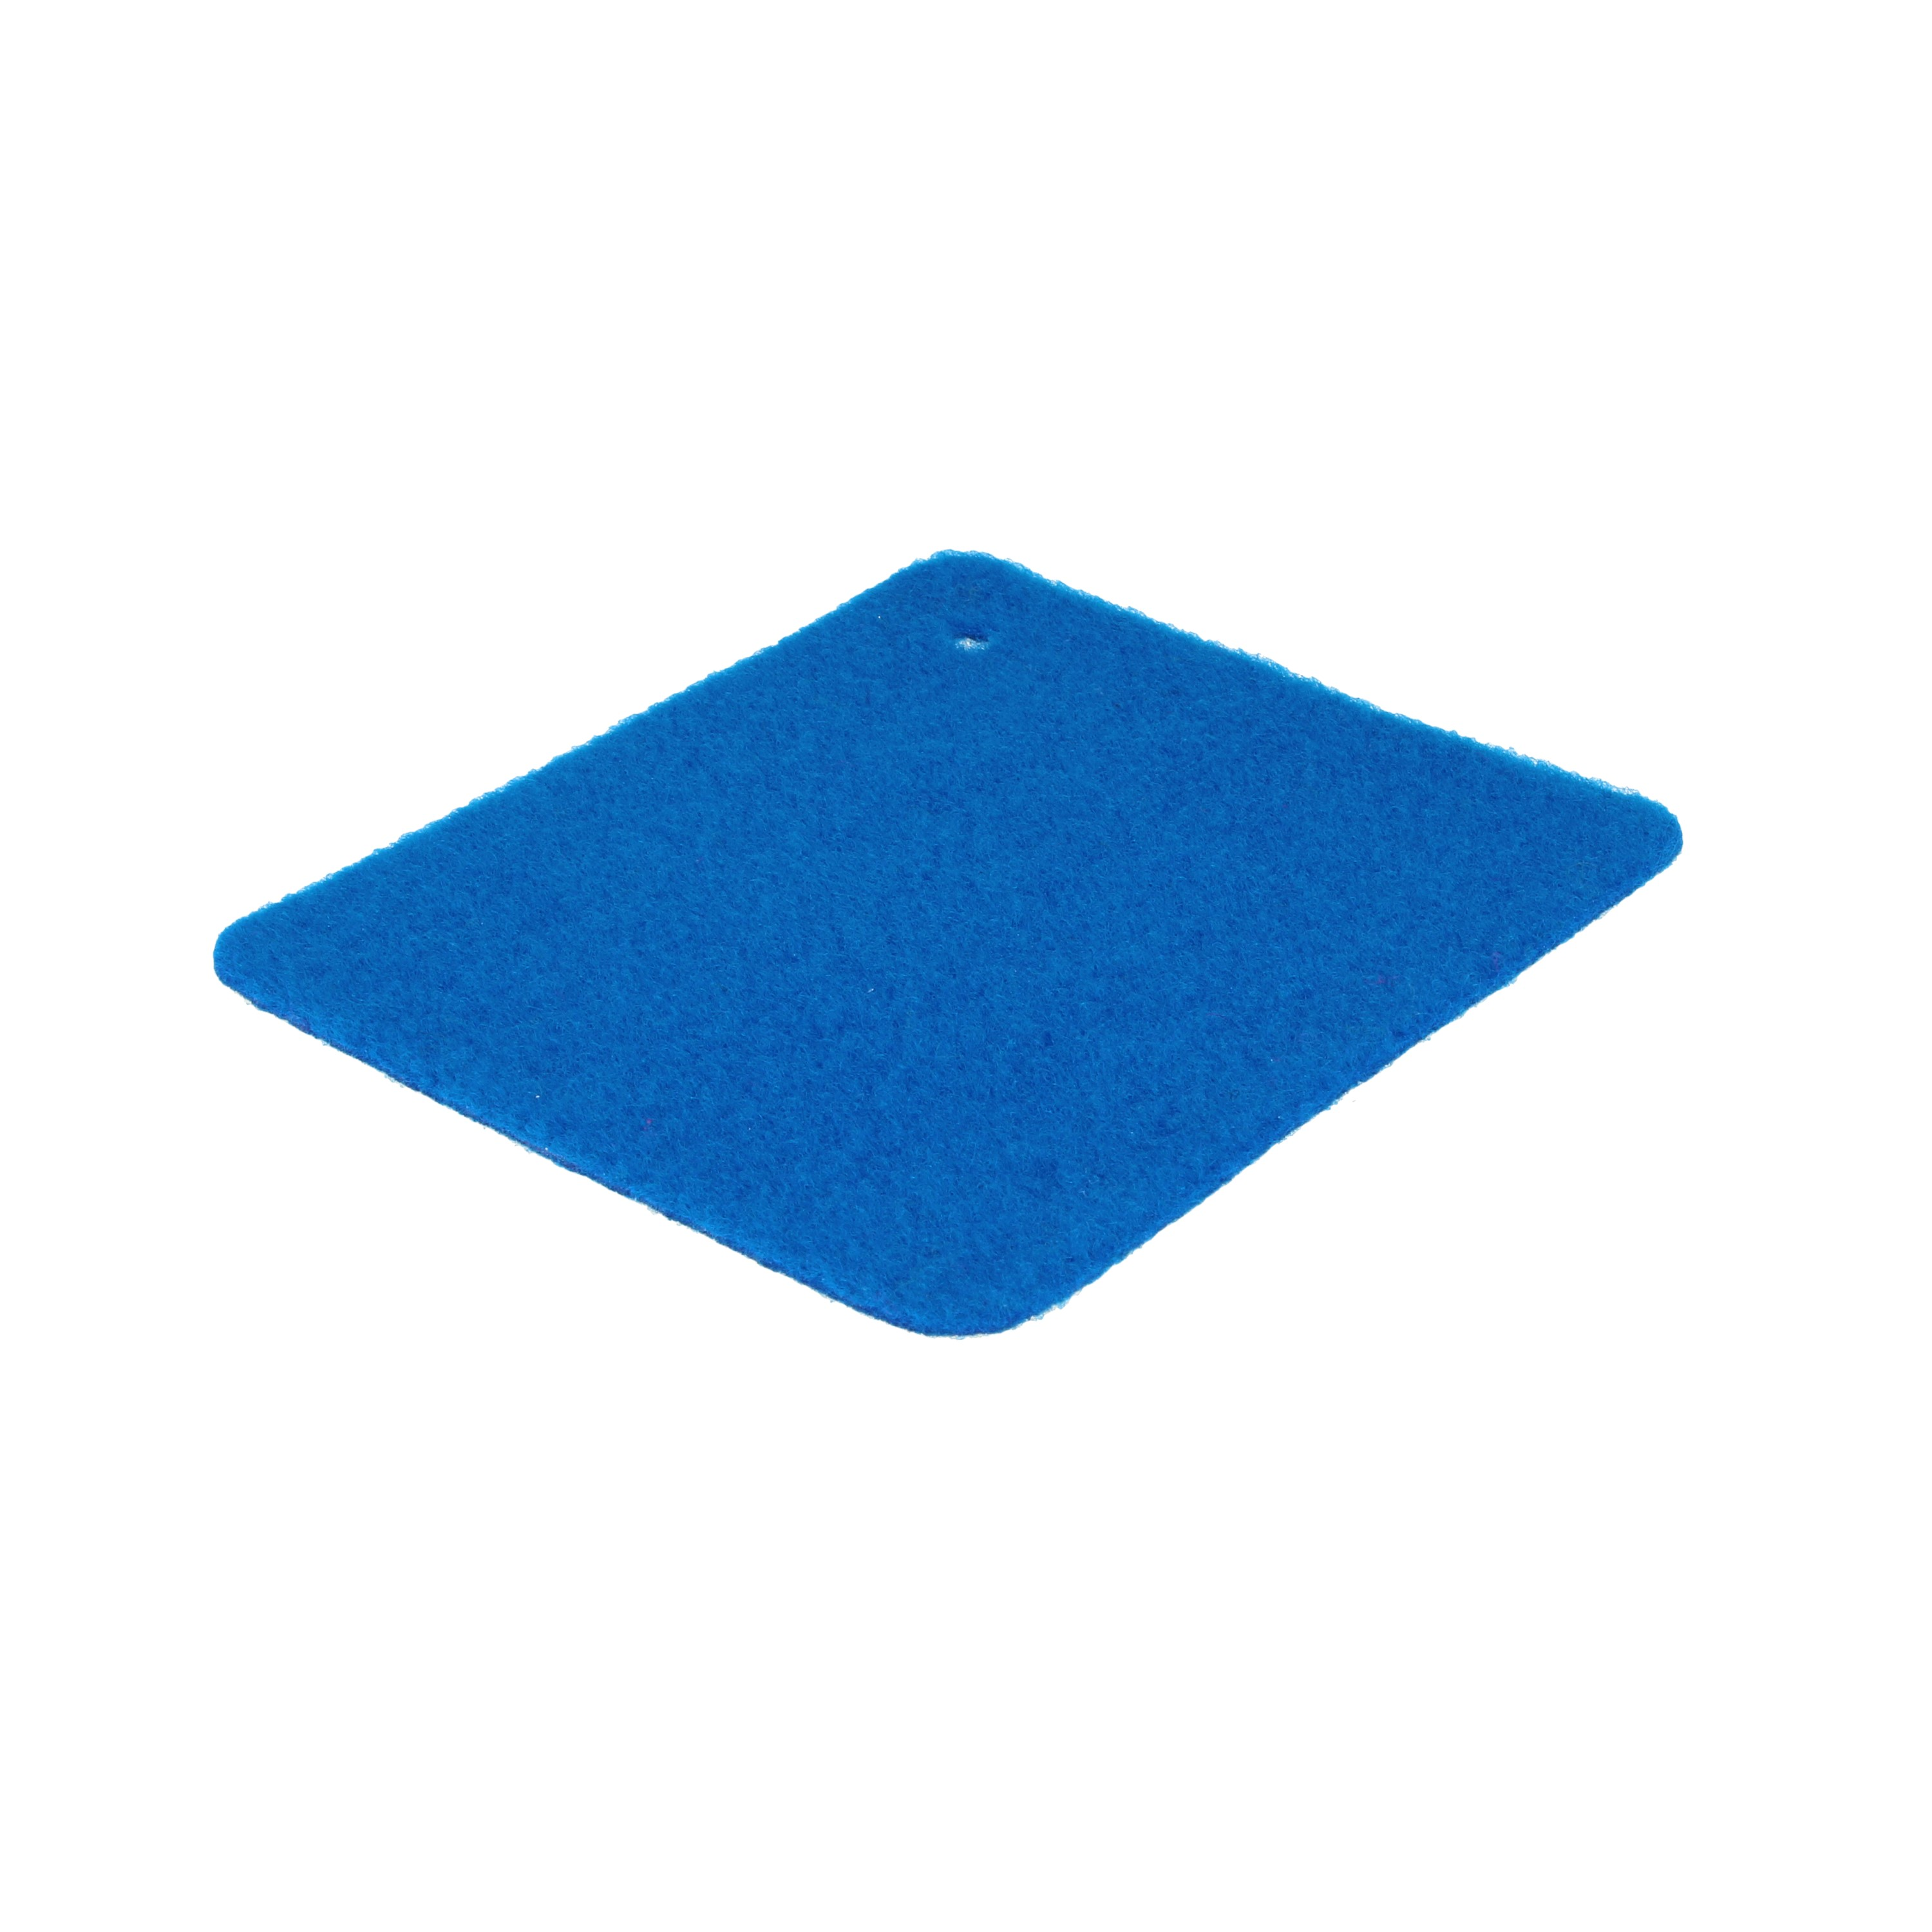 Teppich Rips Gala Teppich Blau Quotluxus Quot Roter Teppich B1